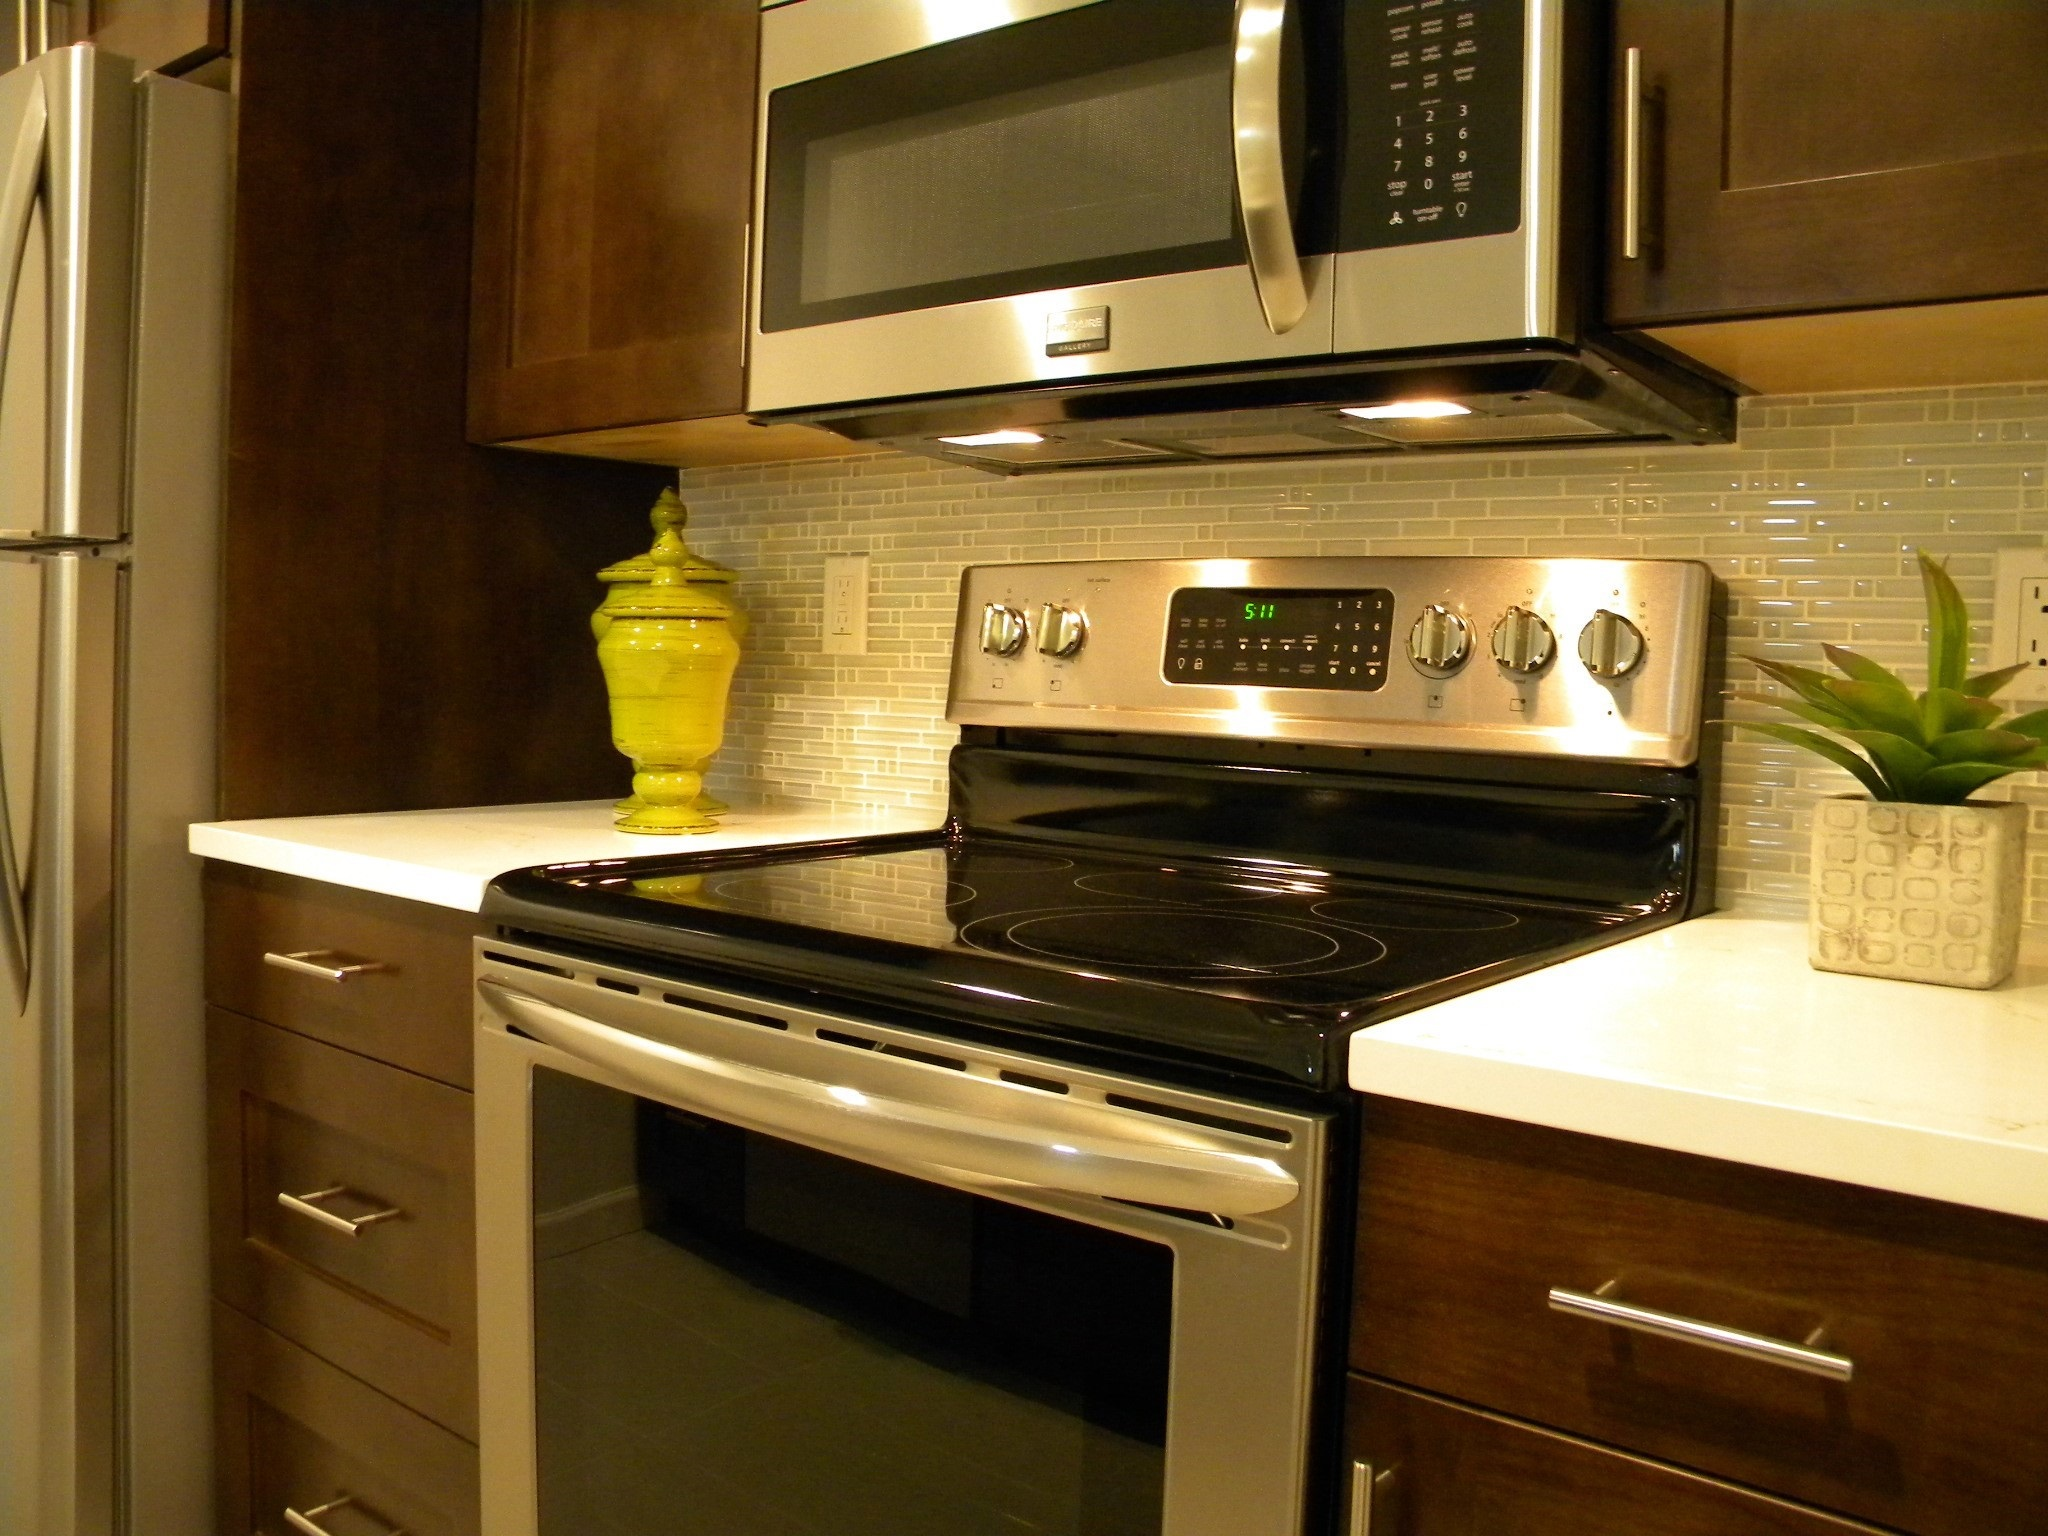 newcastle_condo_appliances-1h.jpg